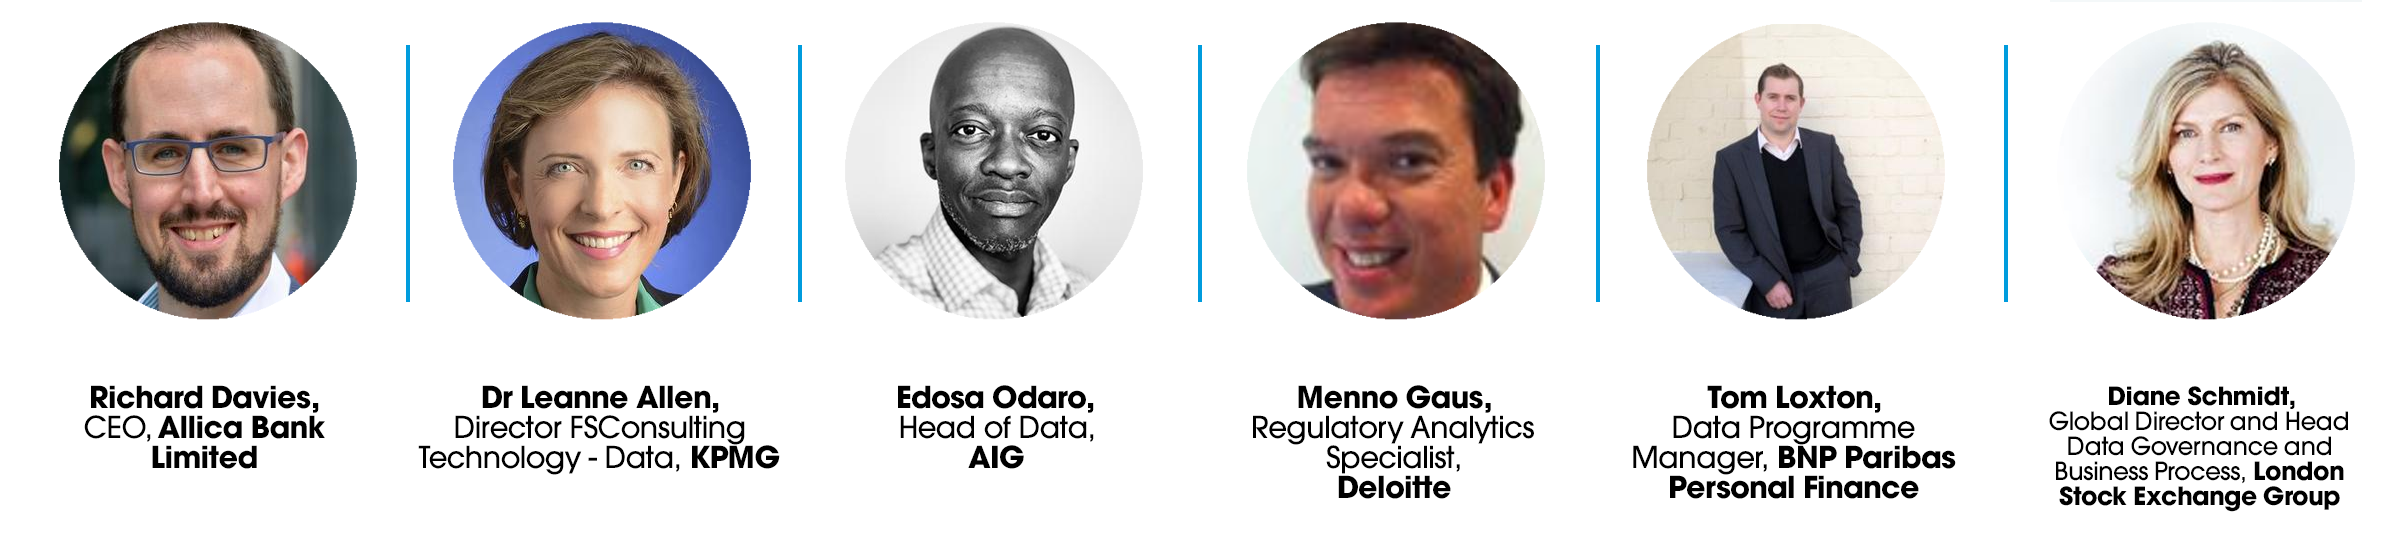 Featured speakers include: